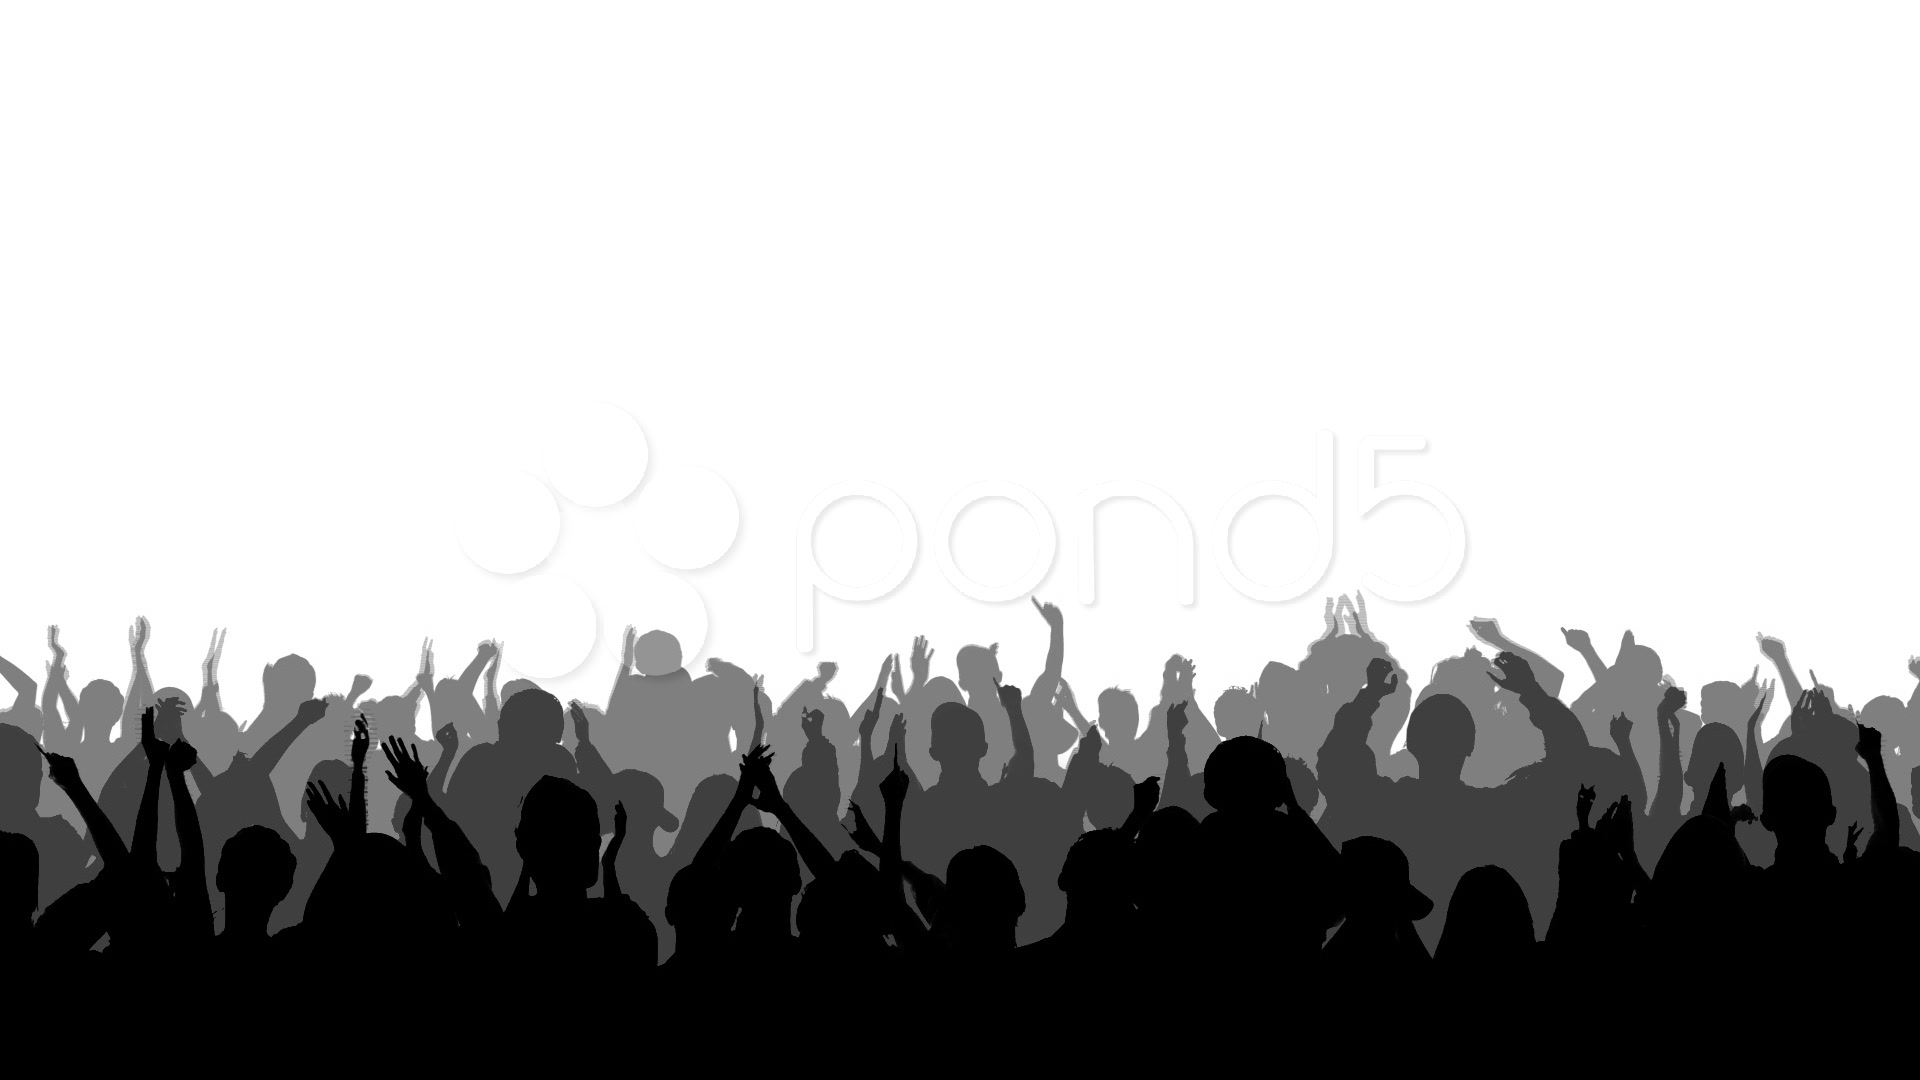 Audience cheering collection clapping. Applause clipart concert